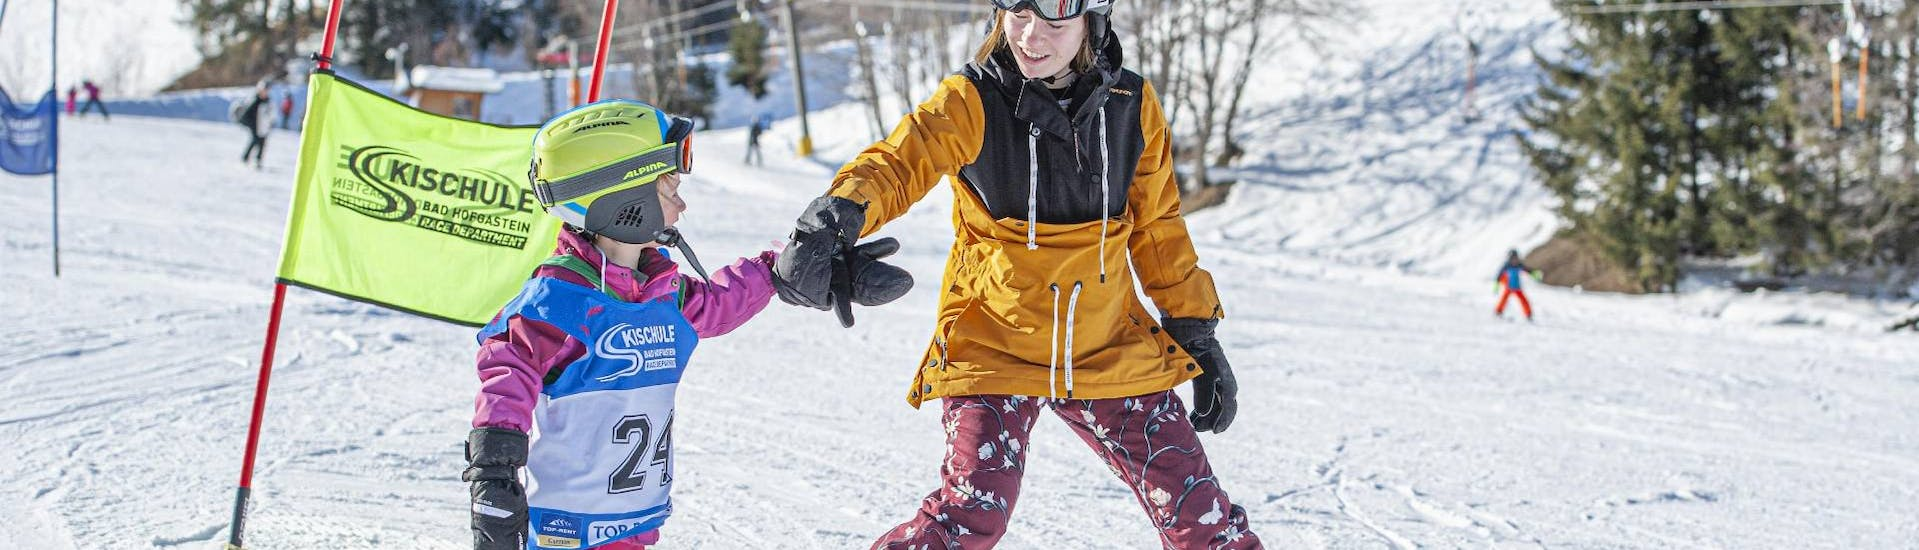 an older child is helping a younger one during their skids ski lesson for beginner at skischule badhofstein.